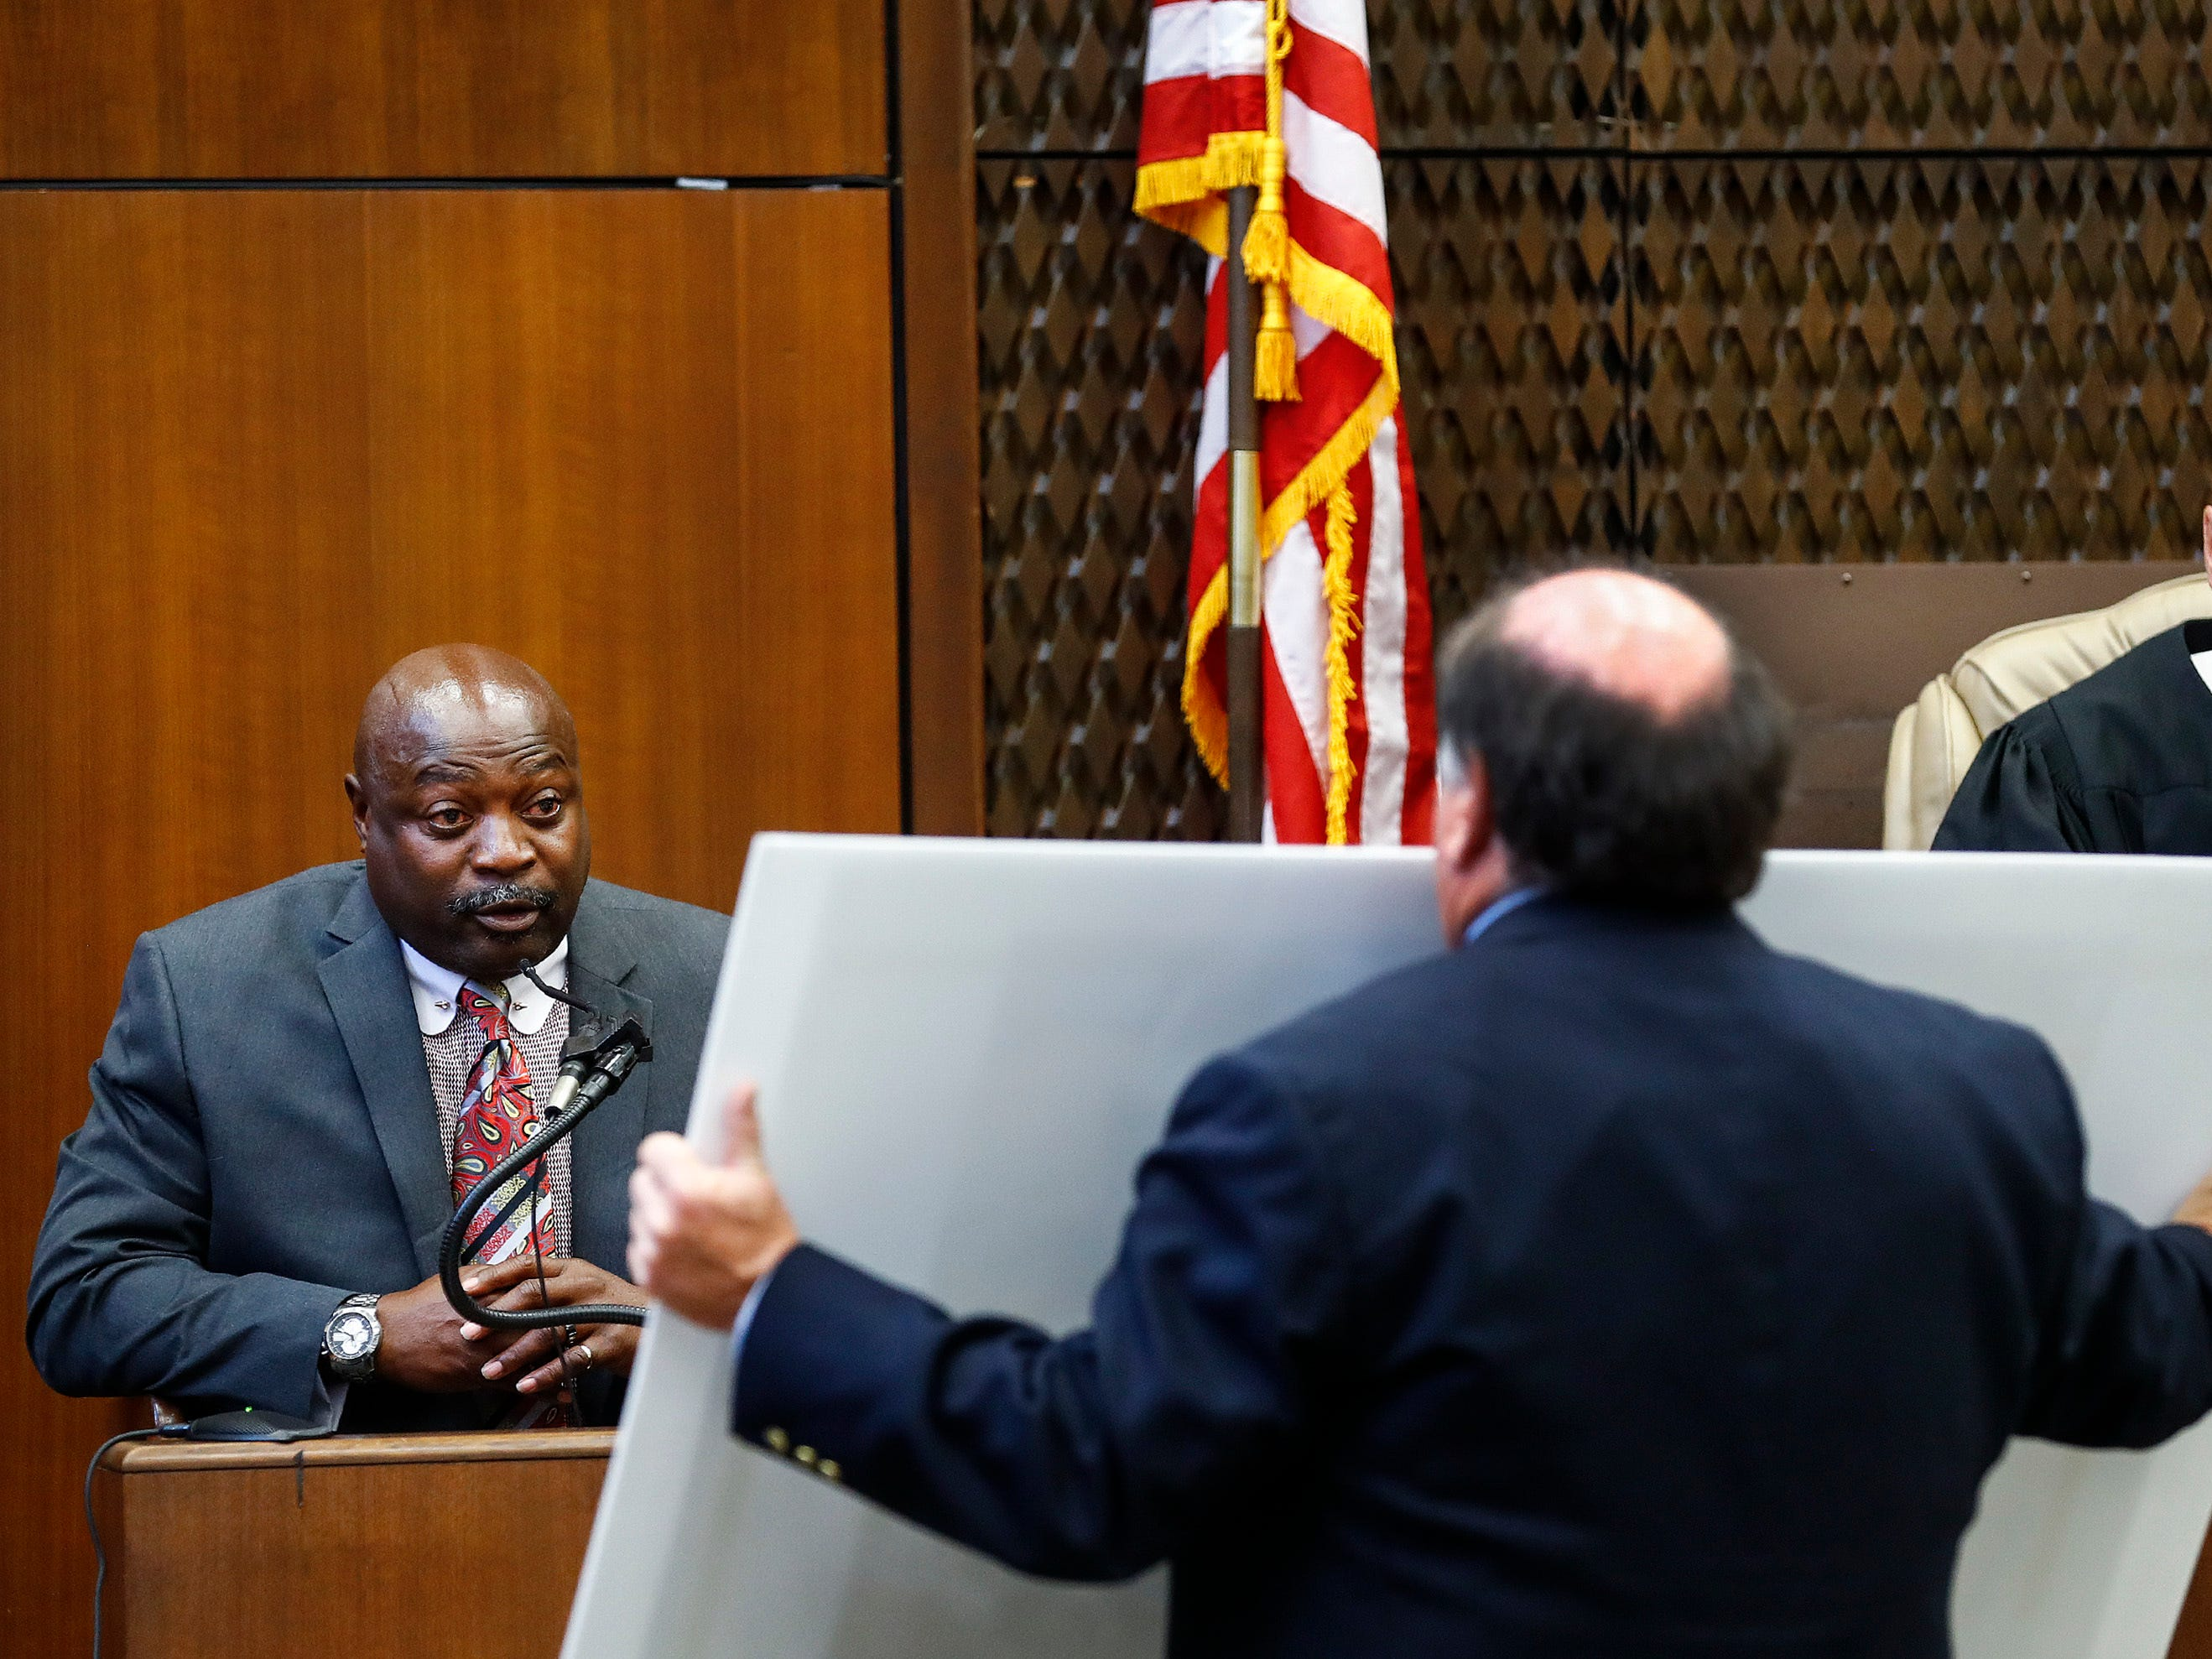 Judge Gerald Chatman, right, listens as lead prosecutor John Champion, center, questions witness Lt. Edward Dickson on the second day of the retrial of Quinton Tellis in Batesville, Mississippi on Wednesday, Sept. 26, 2018. Tellis is charged with burning 19-year-old Jessica Chambers to death almost three years ago on Dec. 6, 2014. He has pleaded not guilty to the murder. (Mark Weber/The Commercial Appeal via AP, Pool)